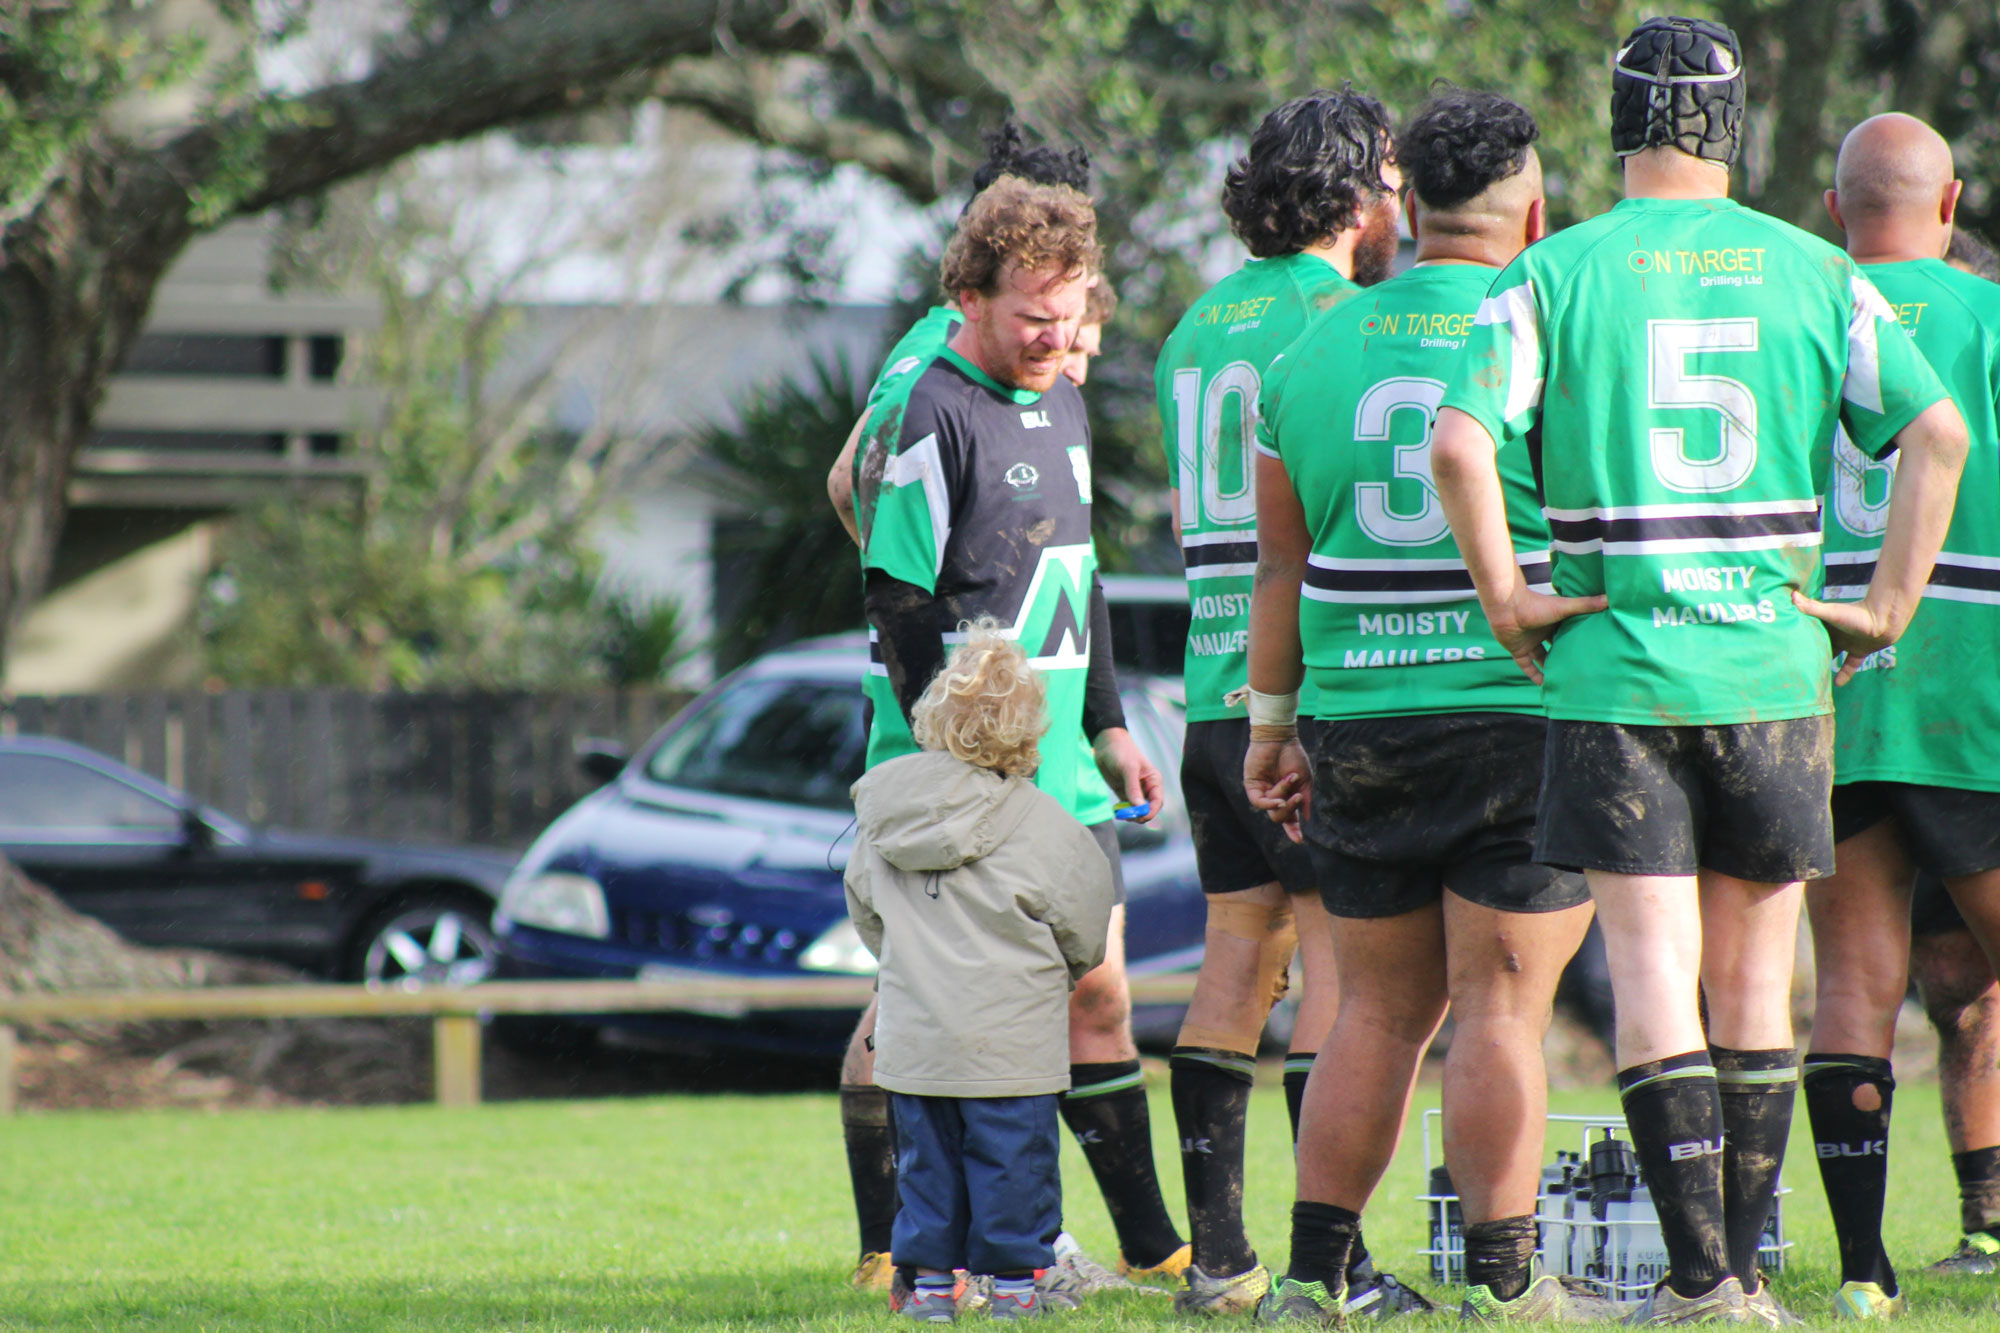 New Zealand's Top Mummy Blogger Parenting Travel Blog Family Rugby